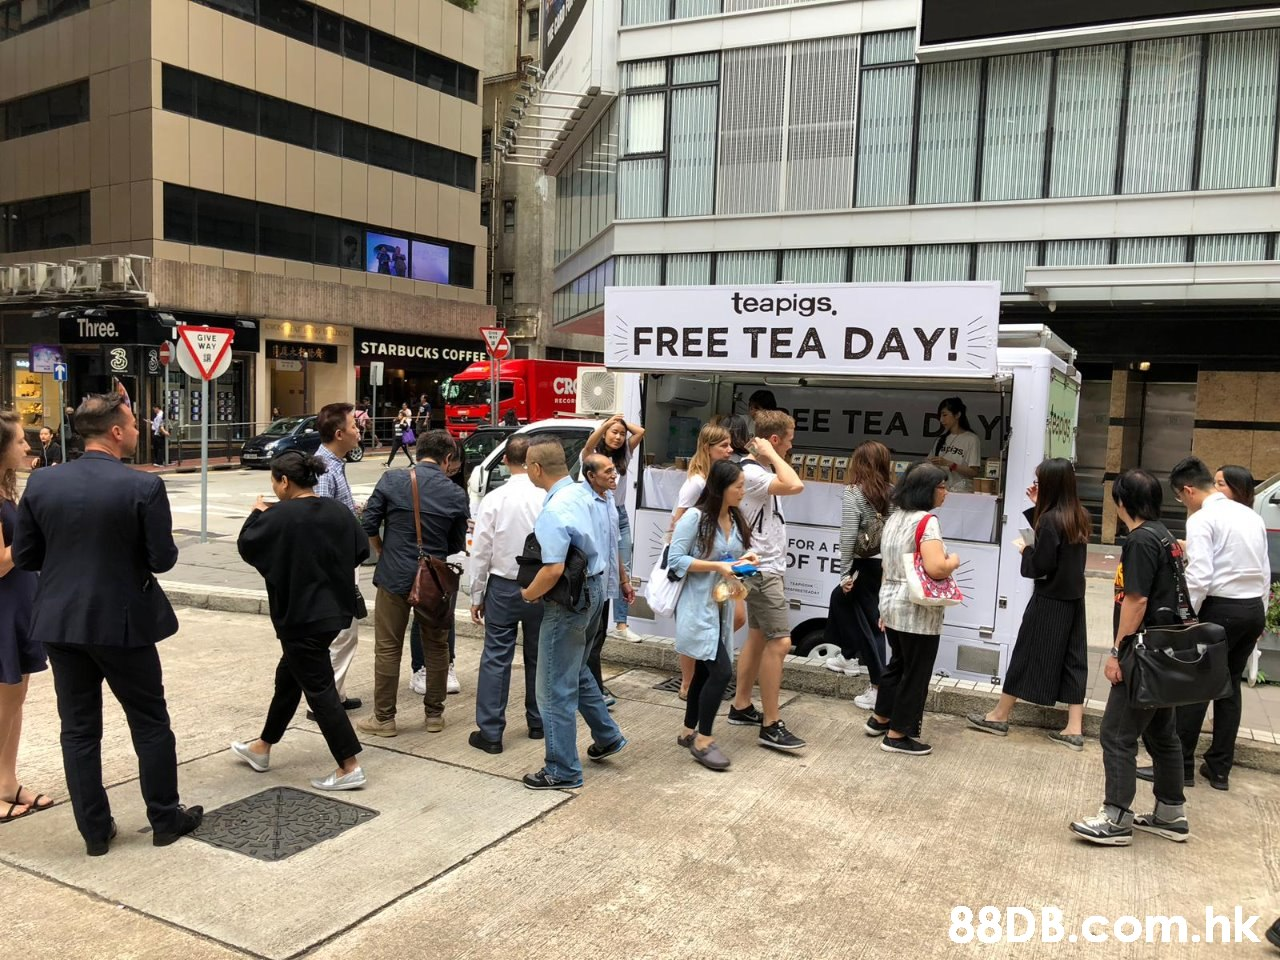 teapigs, FREE TEA DAY! E Three. GIVE WAY STARBUCKS COFFEE CR EE TEA DAY FOR A F OF TE .hk  Crowd,Pedestrian,Event,Street,City